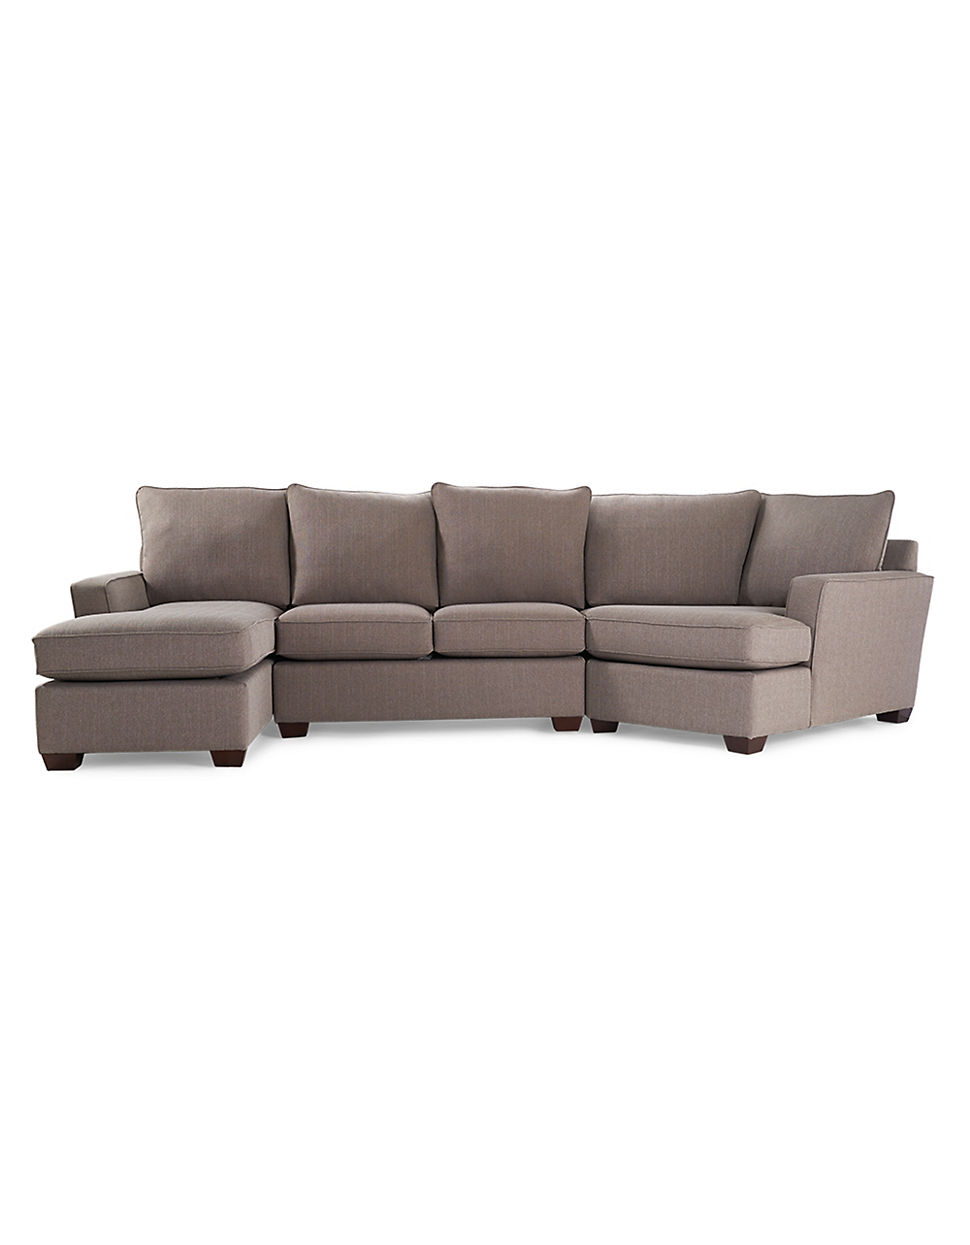 hodan living couches couch with apartments spaces and rooms sofa pin chaise